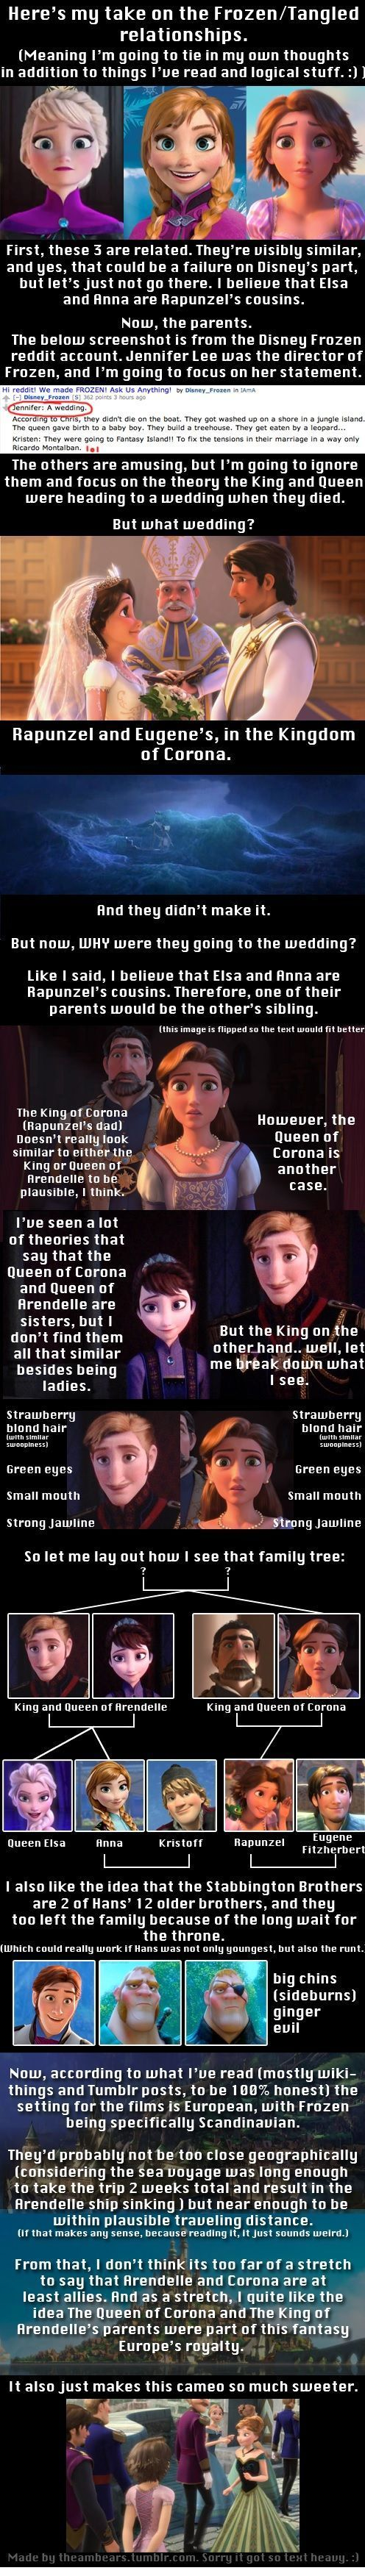 This popular Conspiracy Theory states that Disney's Frozen and Tangled seems to…